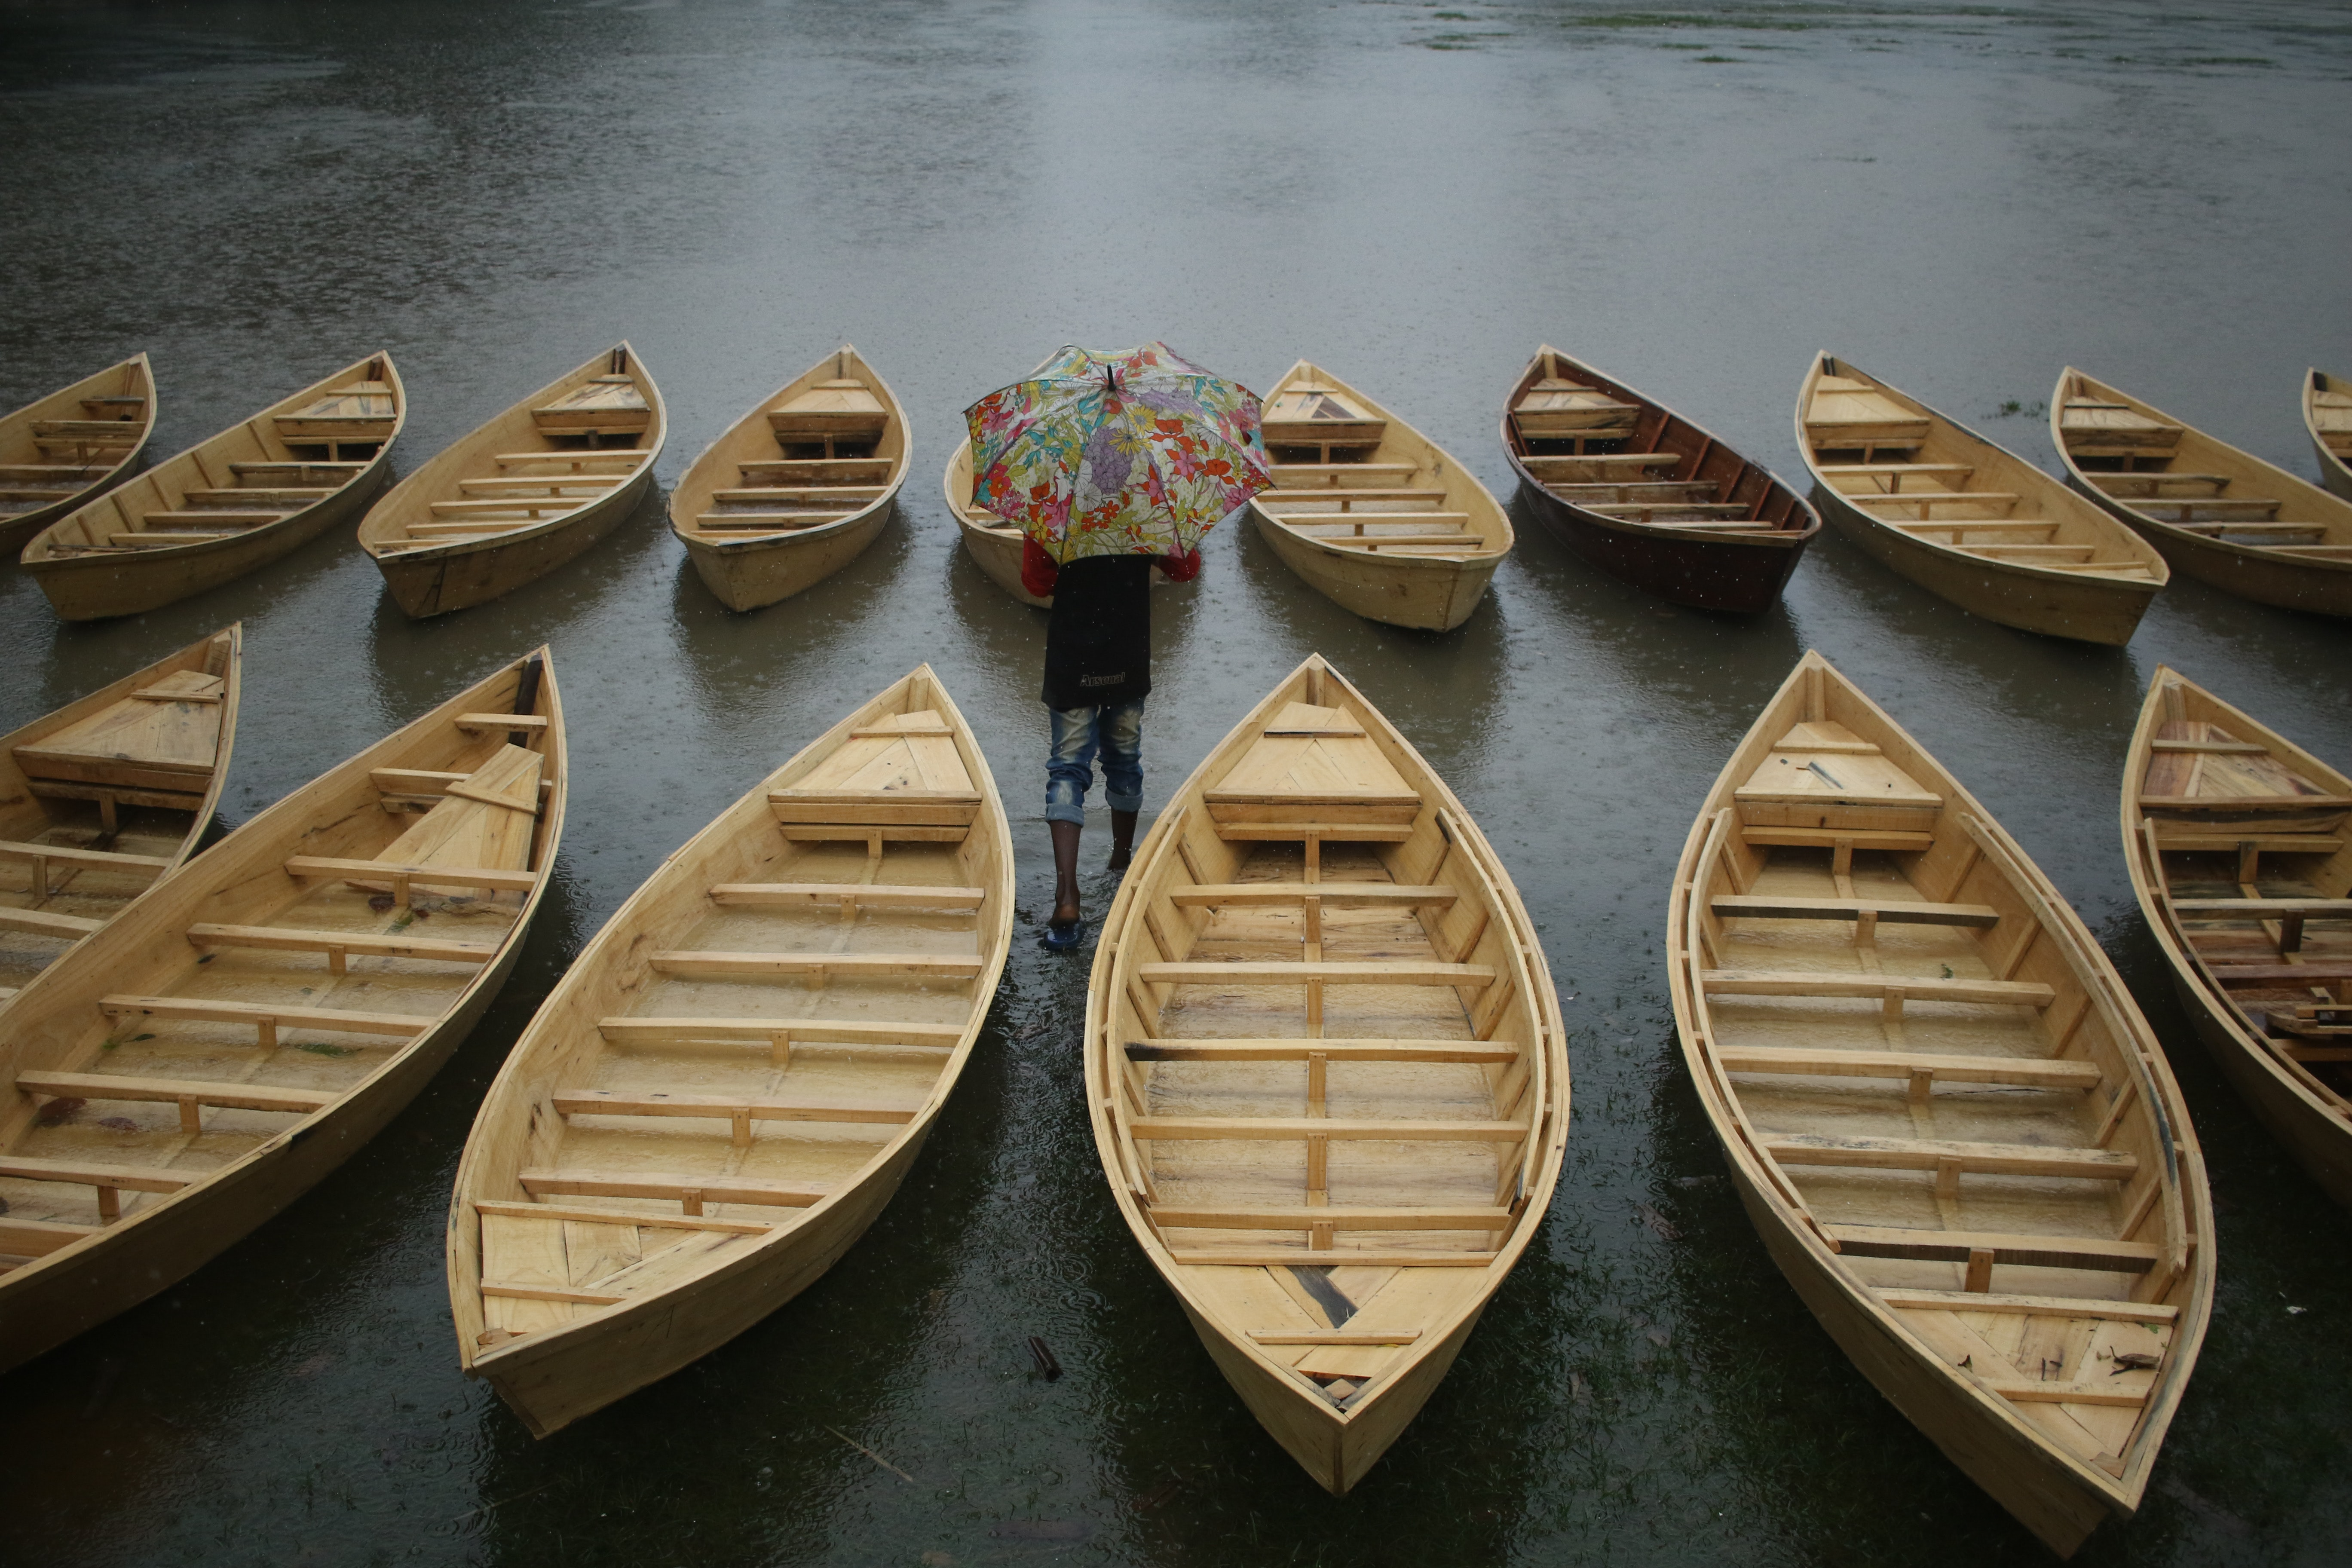 brown canoe boats on body of water